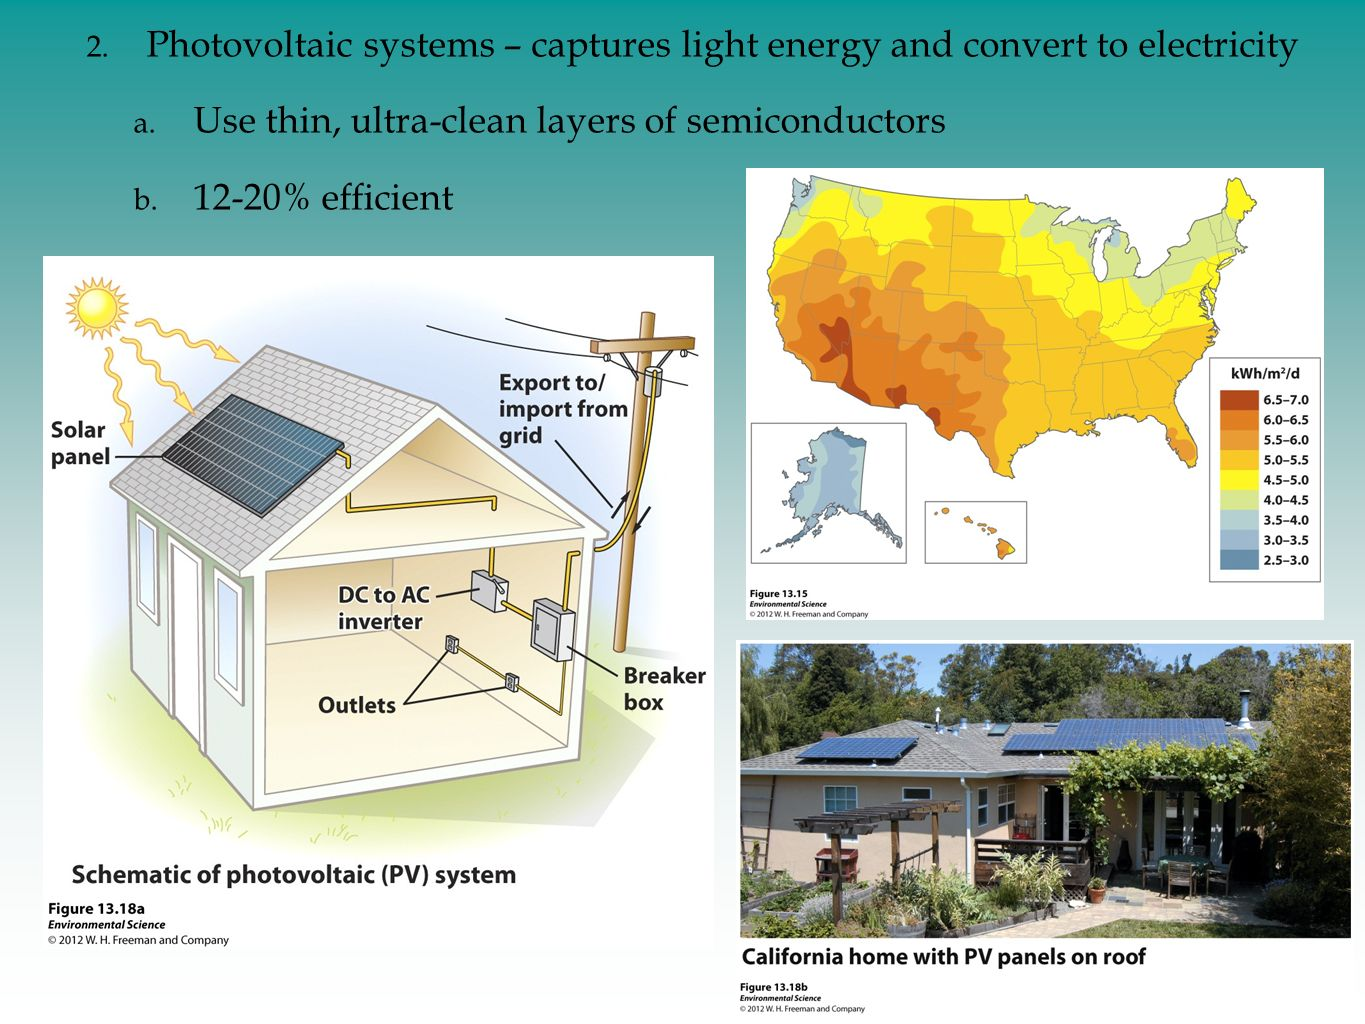 Photovoltaic systems – captures light energy and convert to electricity